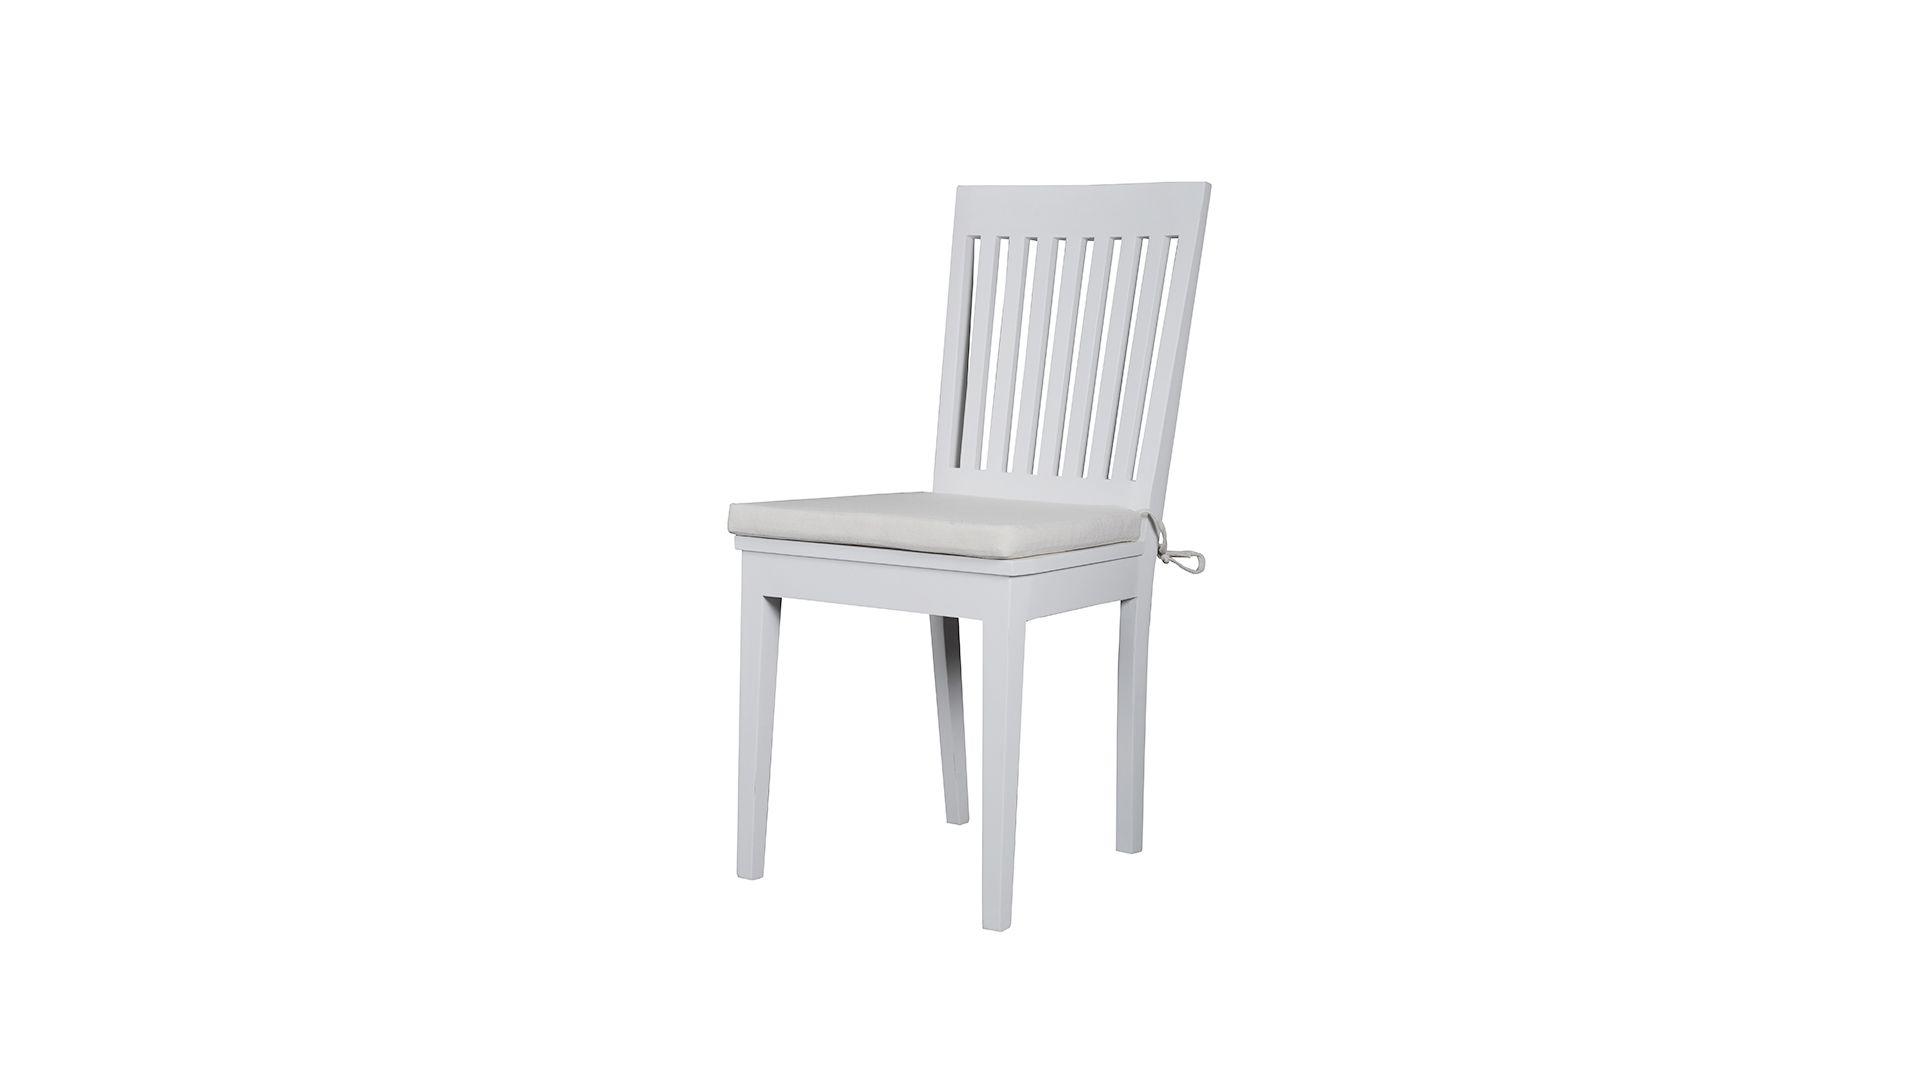 Dining Chair – 2 units in 1 pack